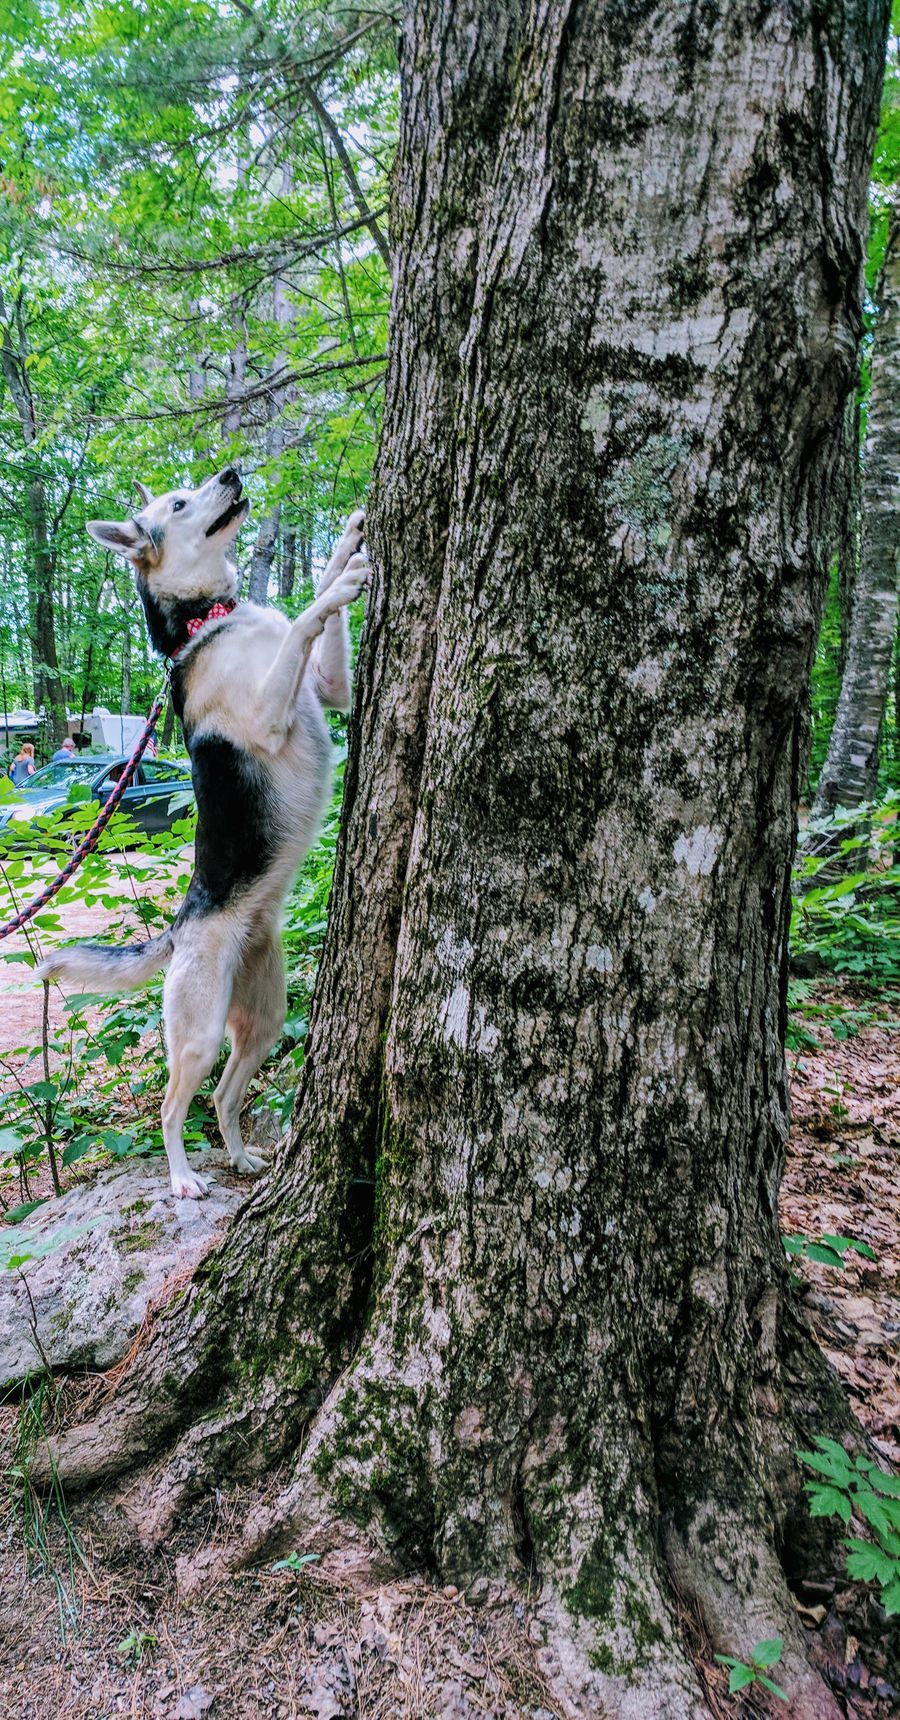 Hello friend Tree Trunk Dog Tree Domestic Animals Pets Animal Themes One Animal Mammal Day Outdoors Dogs Smiling Catching Squirels Breathing Space The Week On EyeEm EyeEmNewHere Pet Portraits Followme